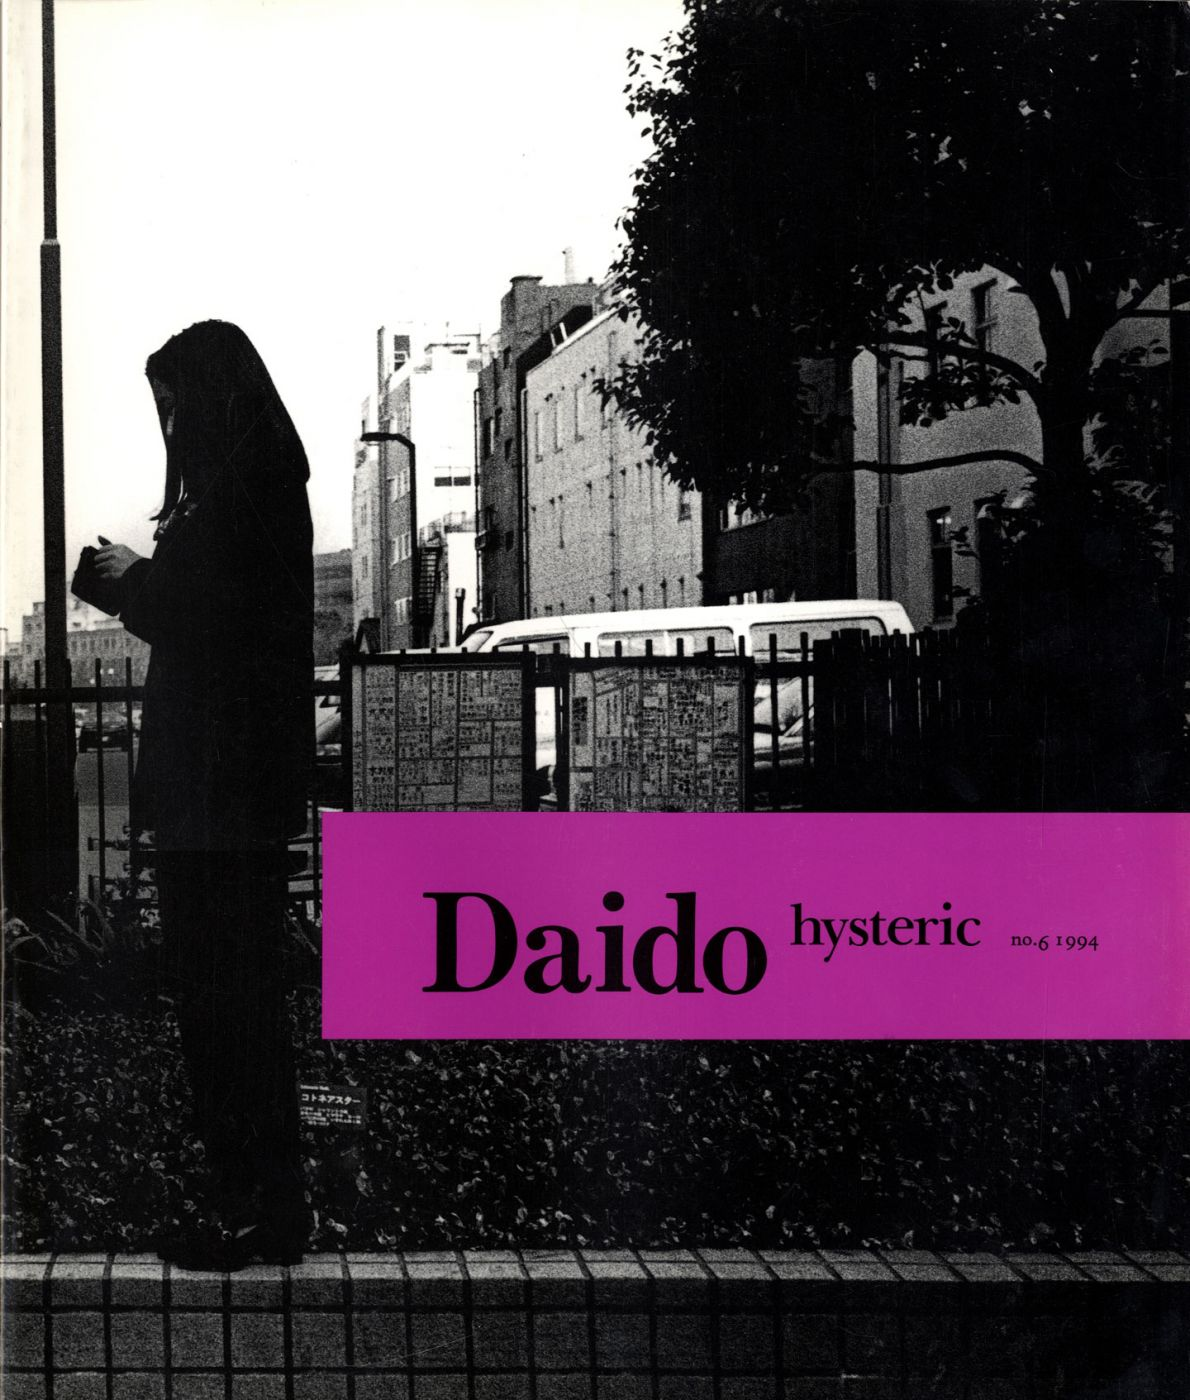 Hysteric Glamour: Daido Moriyama (Hysteric No. 6, 1994), Limited Edition [SIGNED]